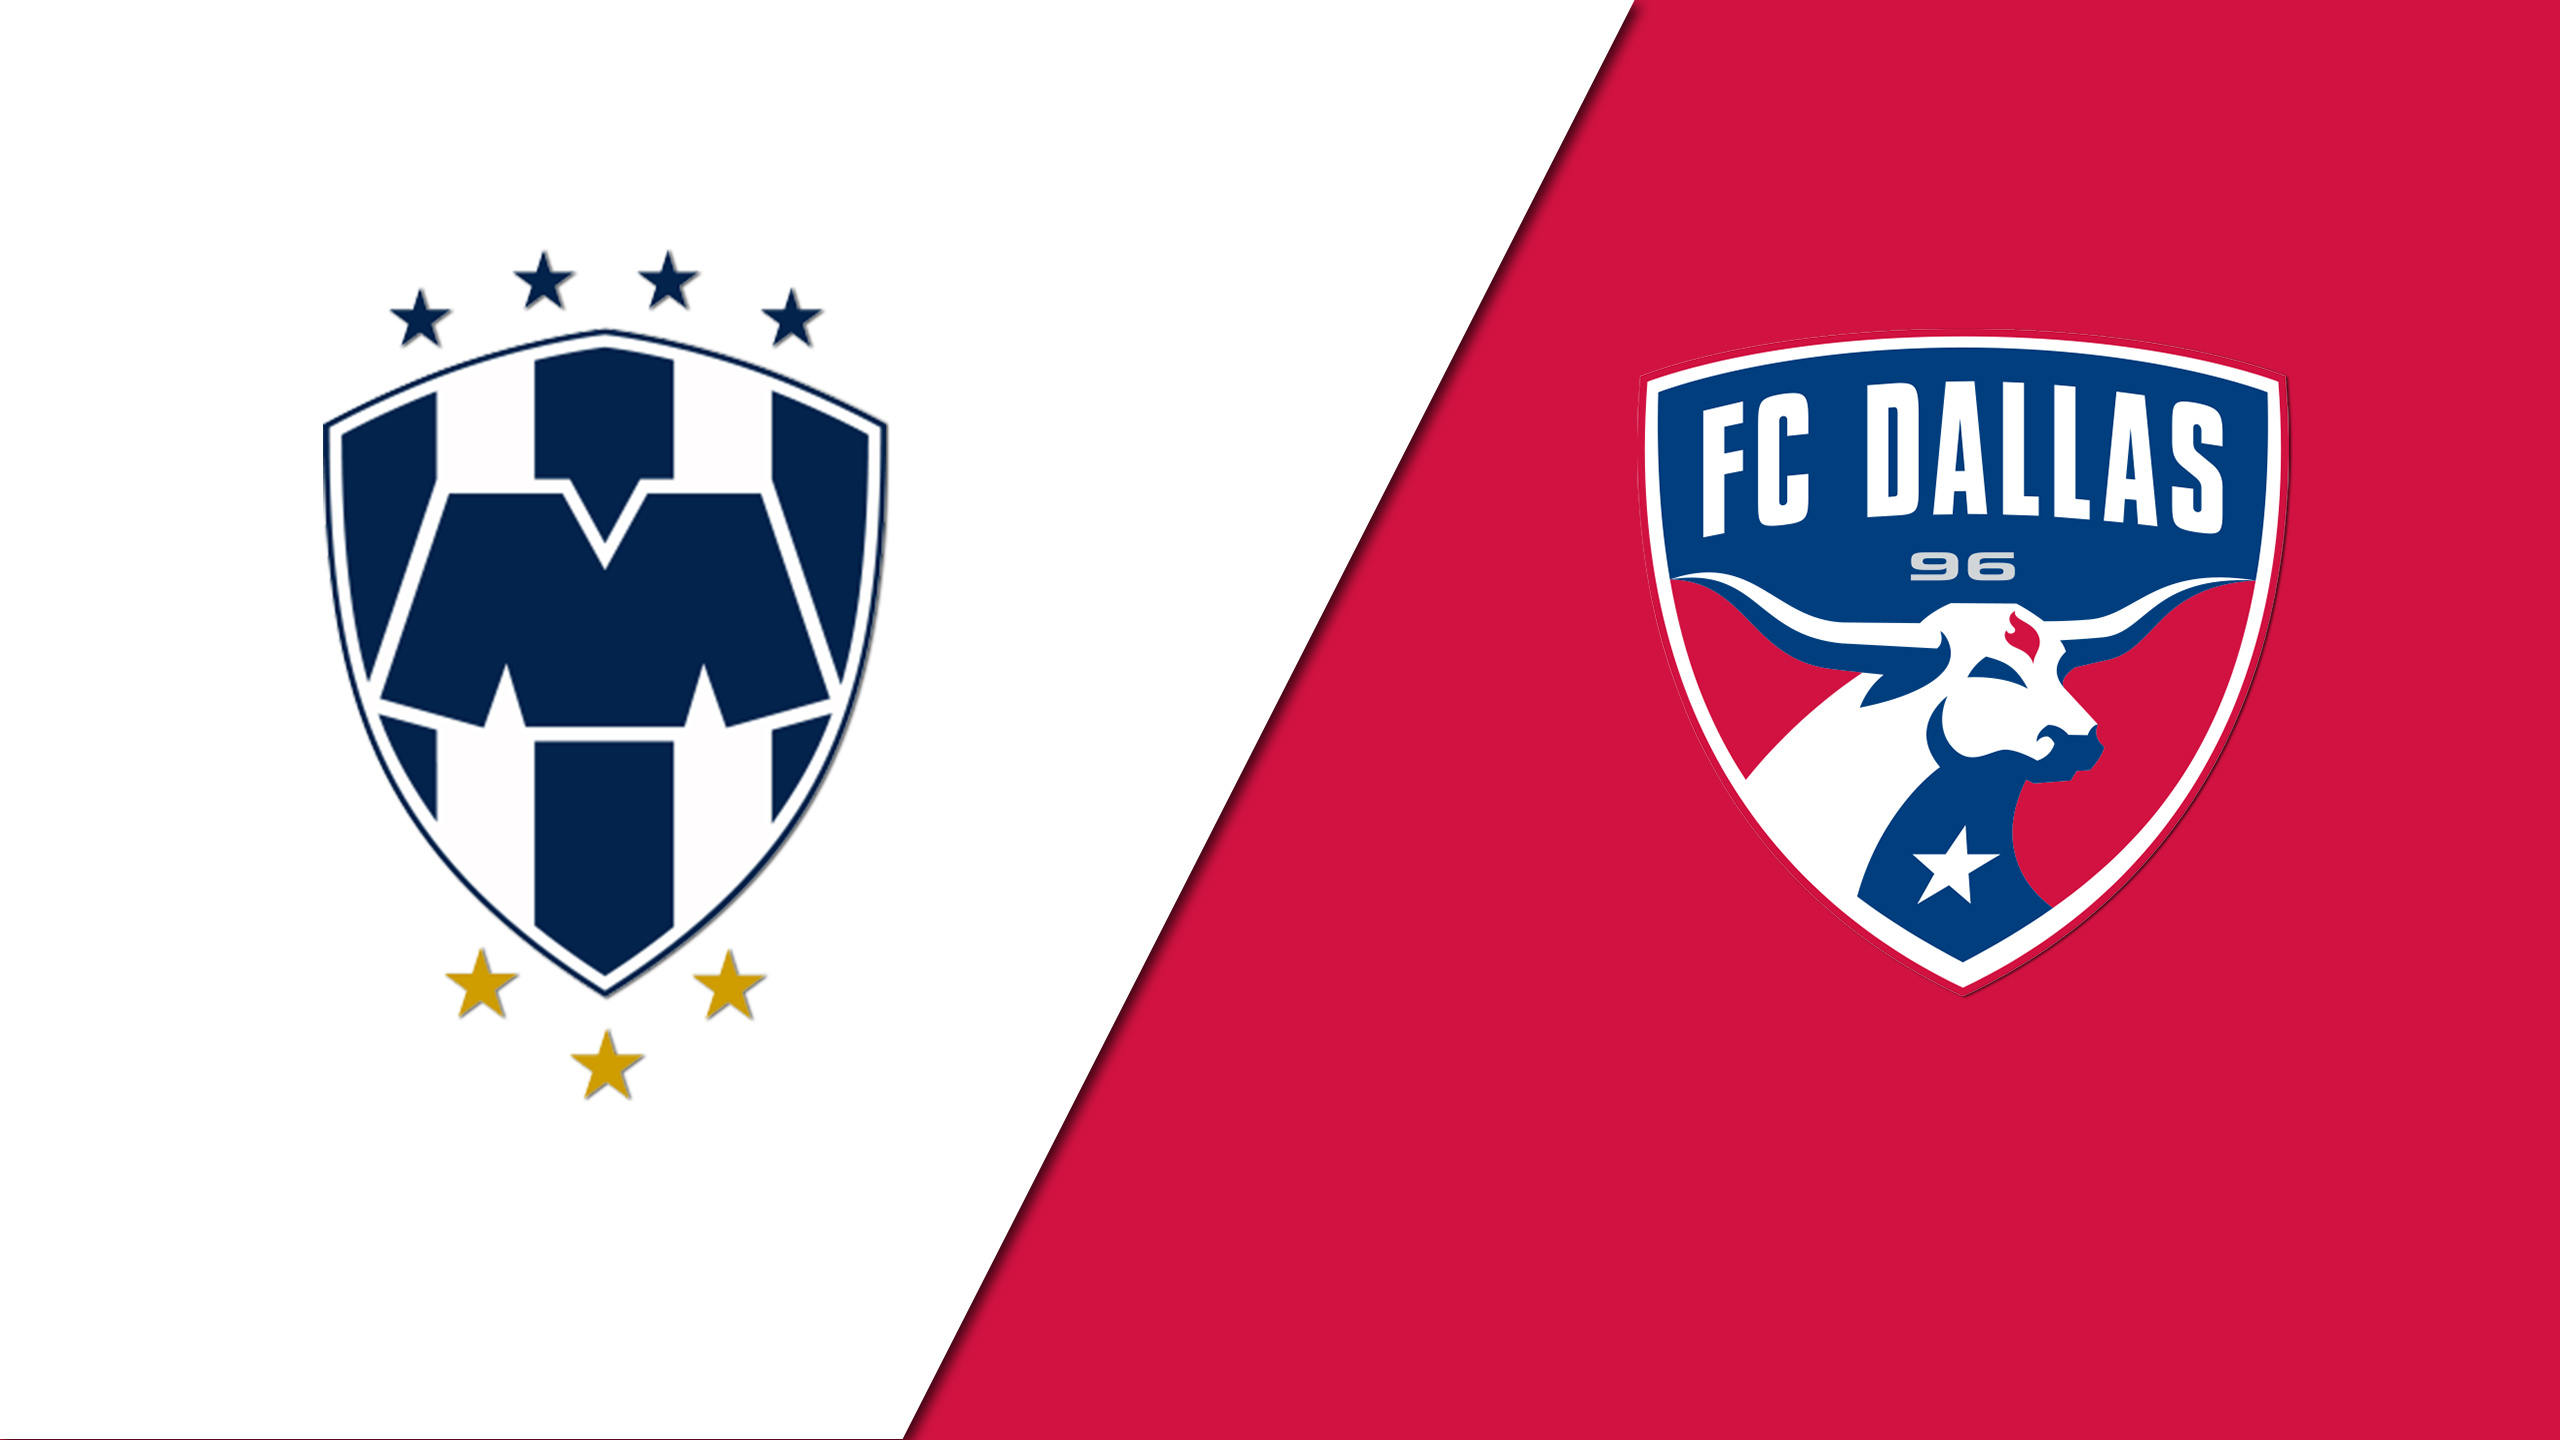 Rayados de Monterrey Under-14 vs. FC Dallas Under-14